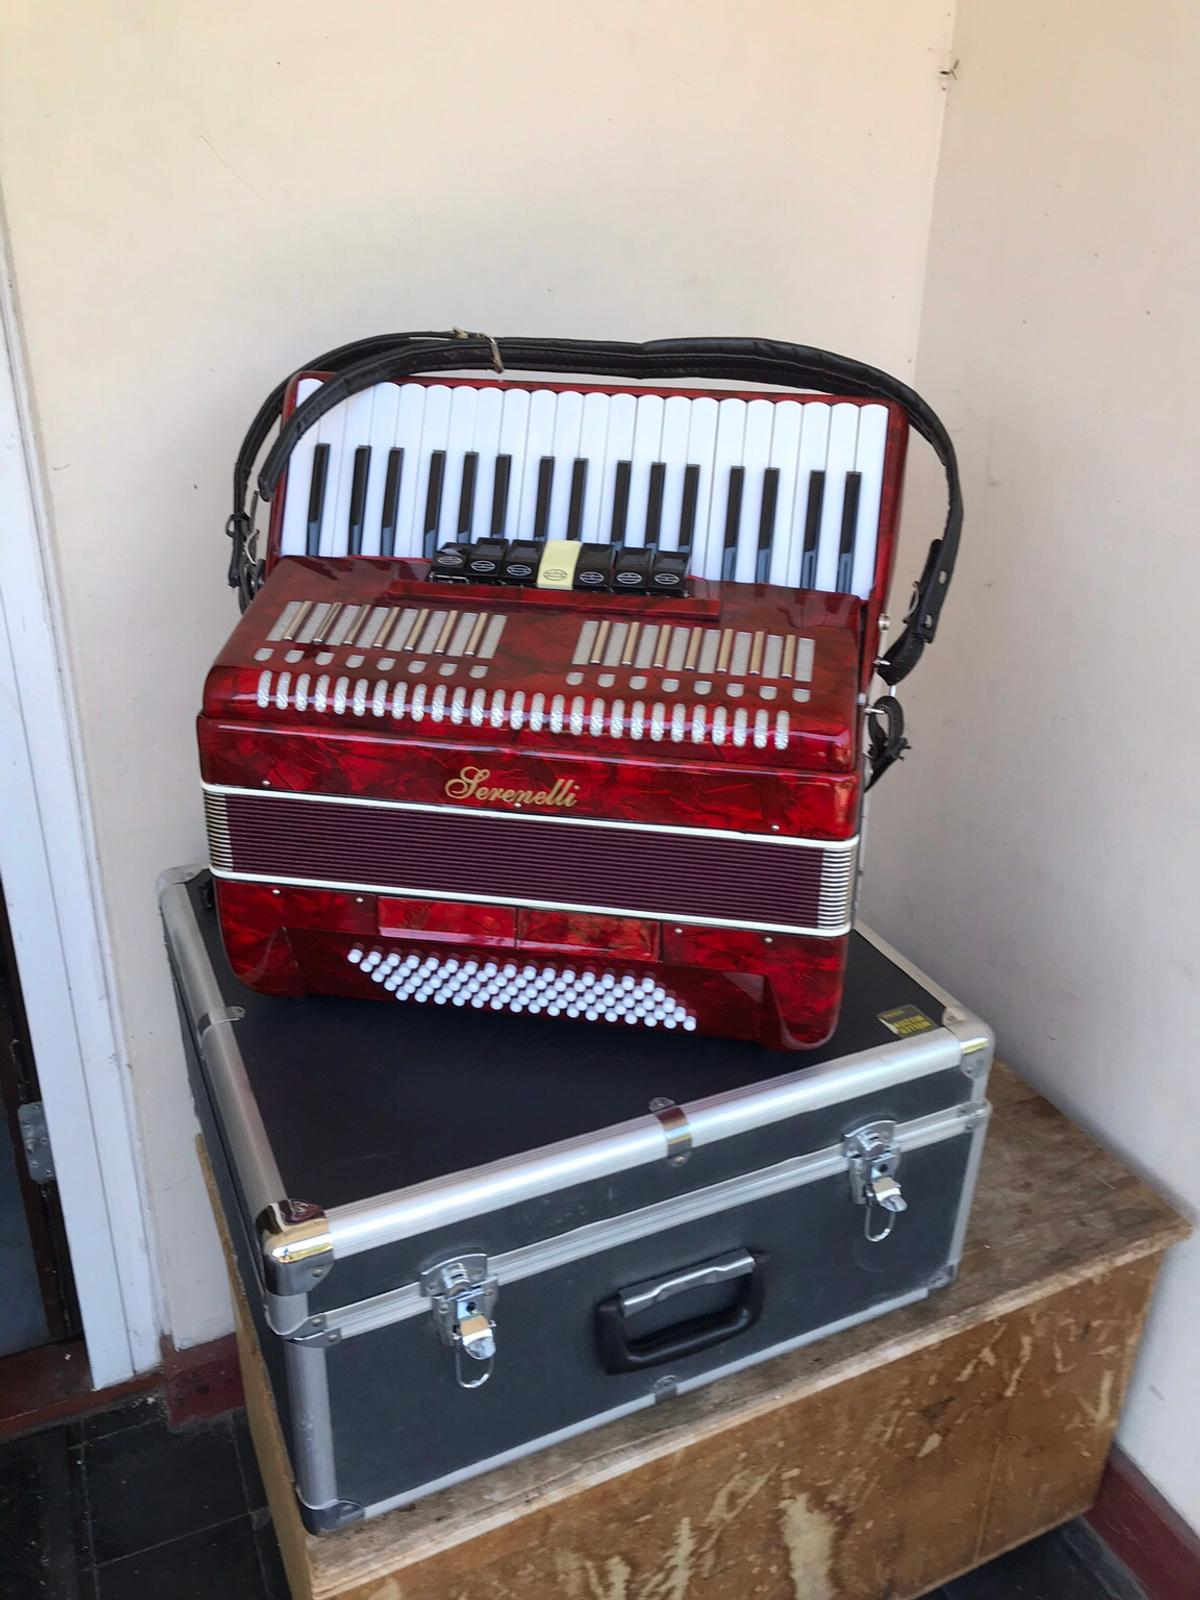 80 bass Serenelli Accordion in E9 London for £250 00 for